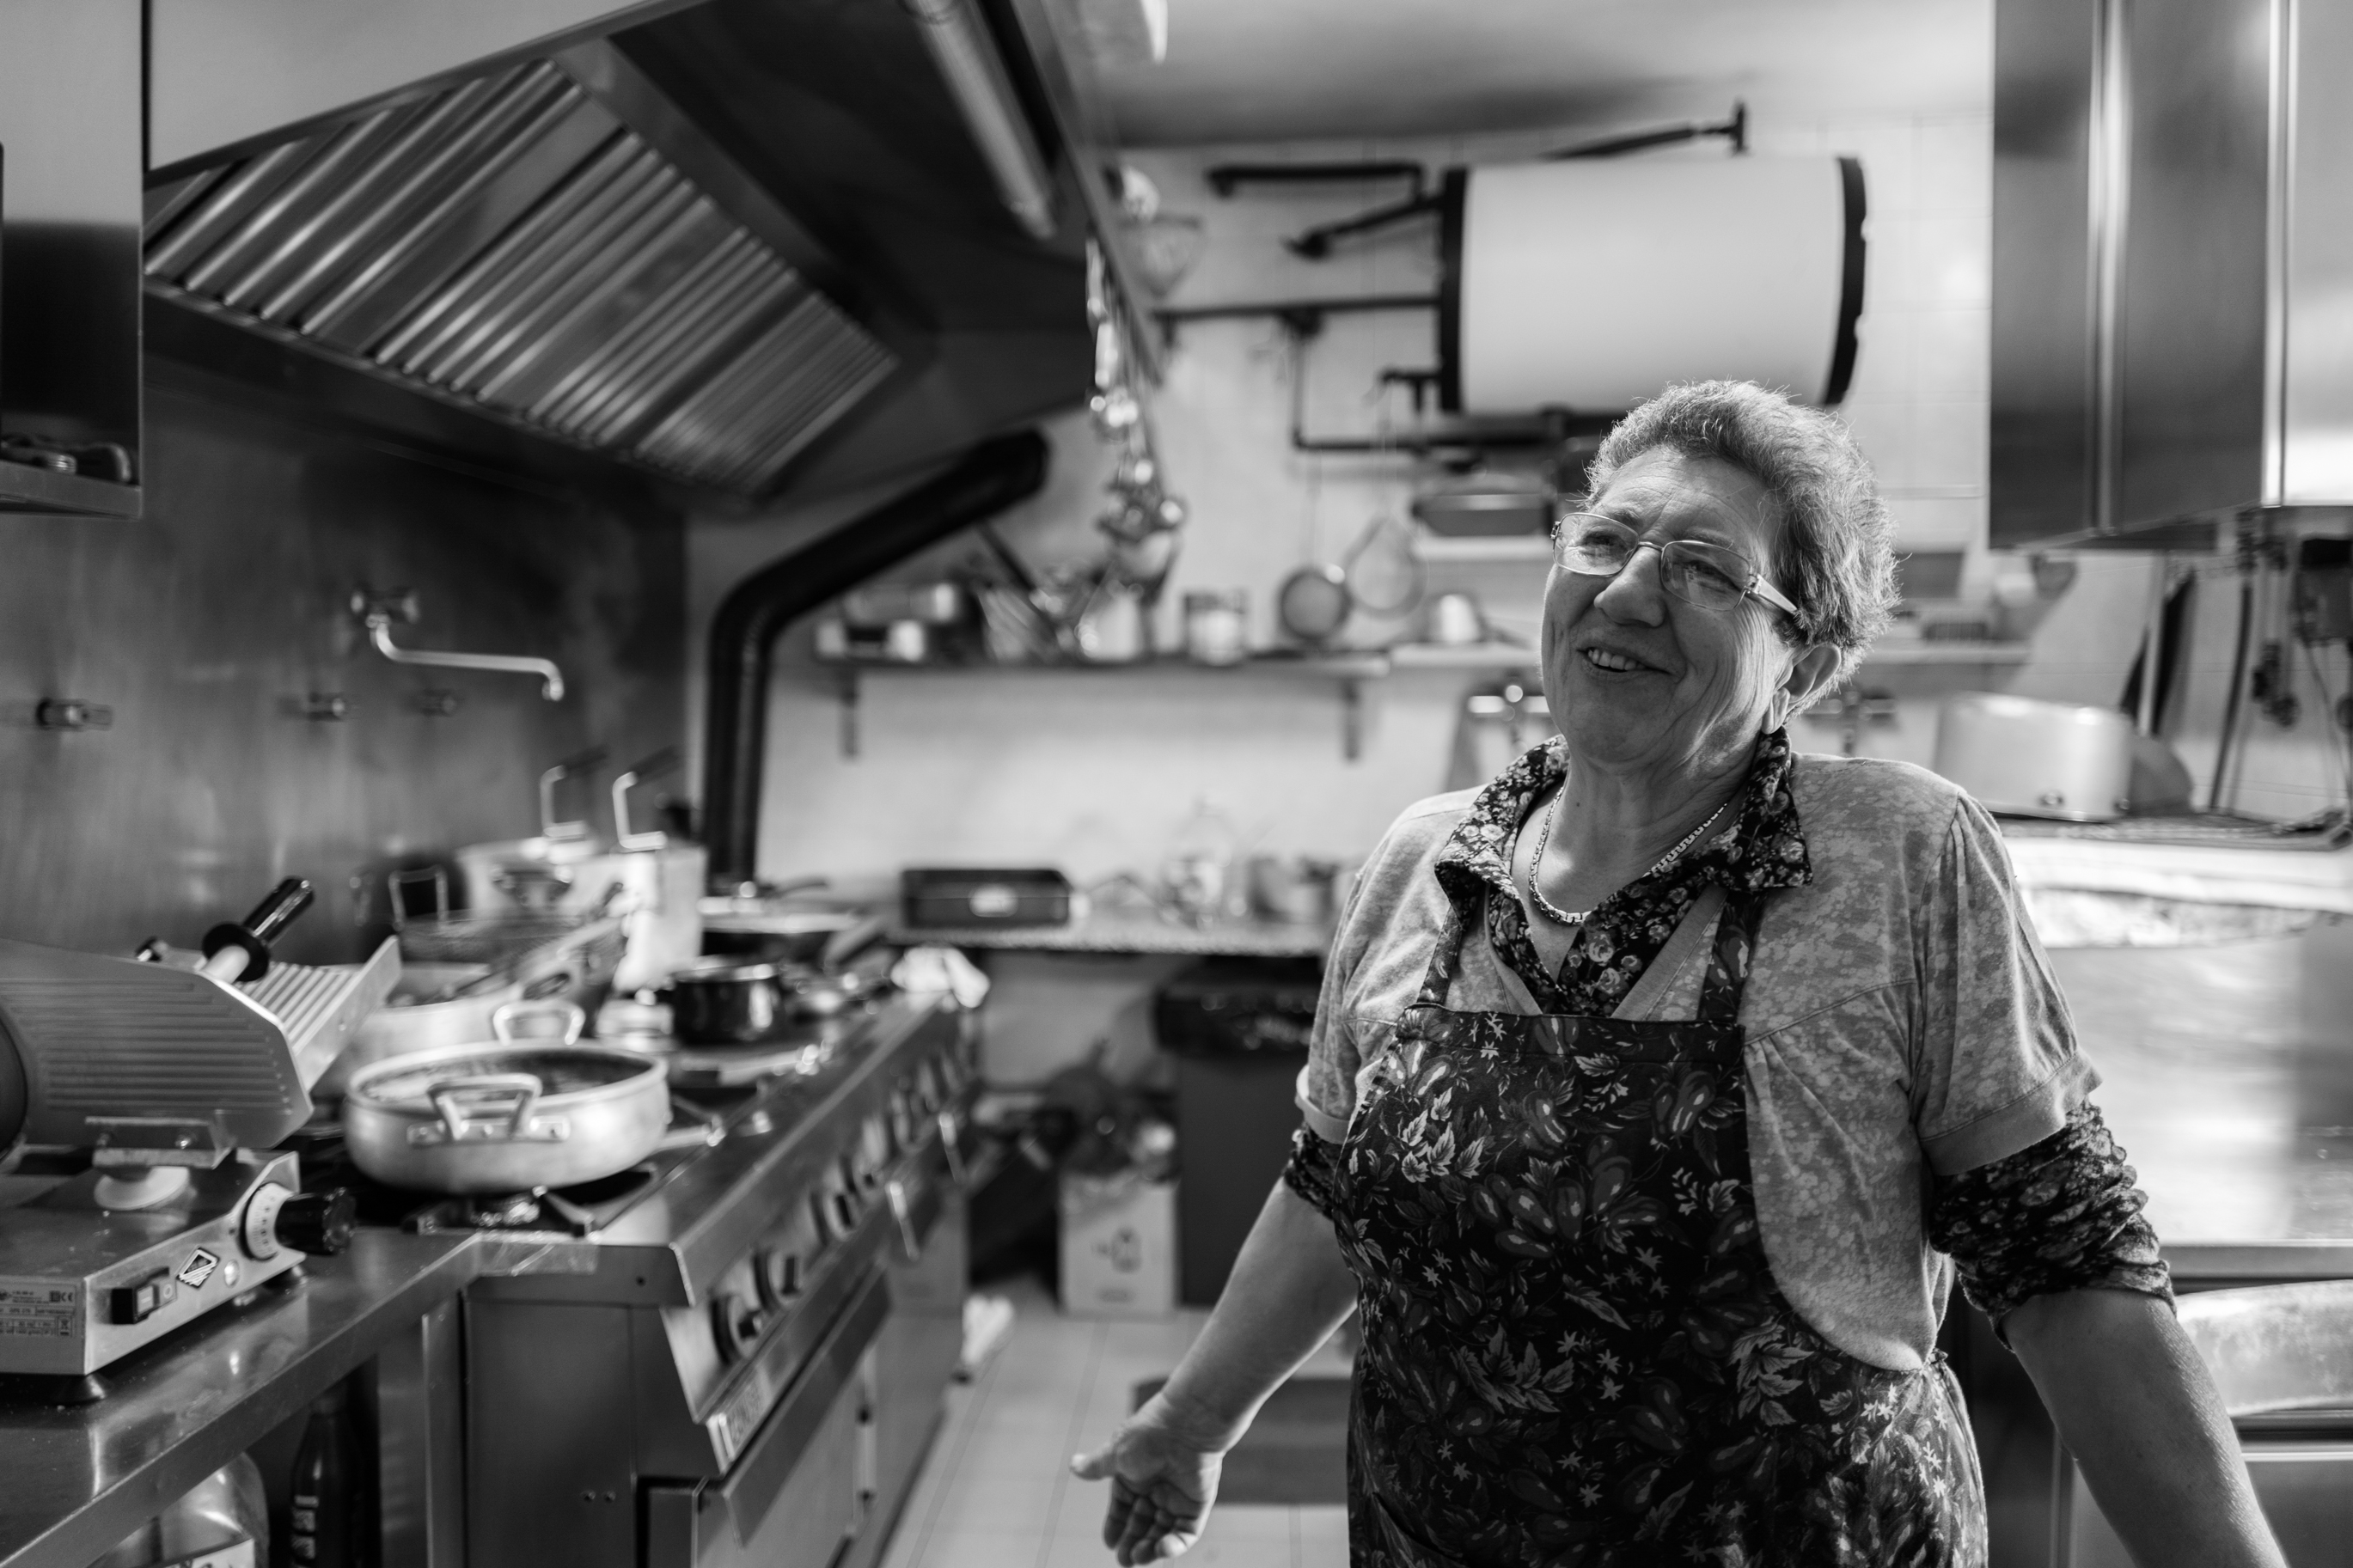 Nonna Milena in her kitchen